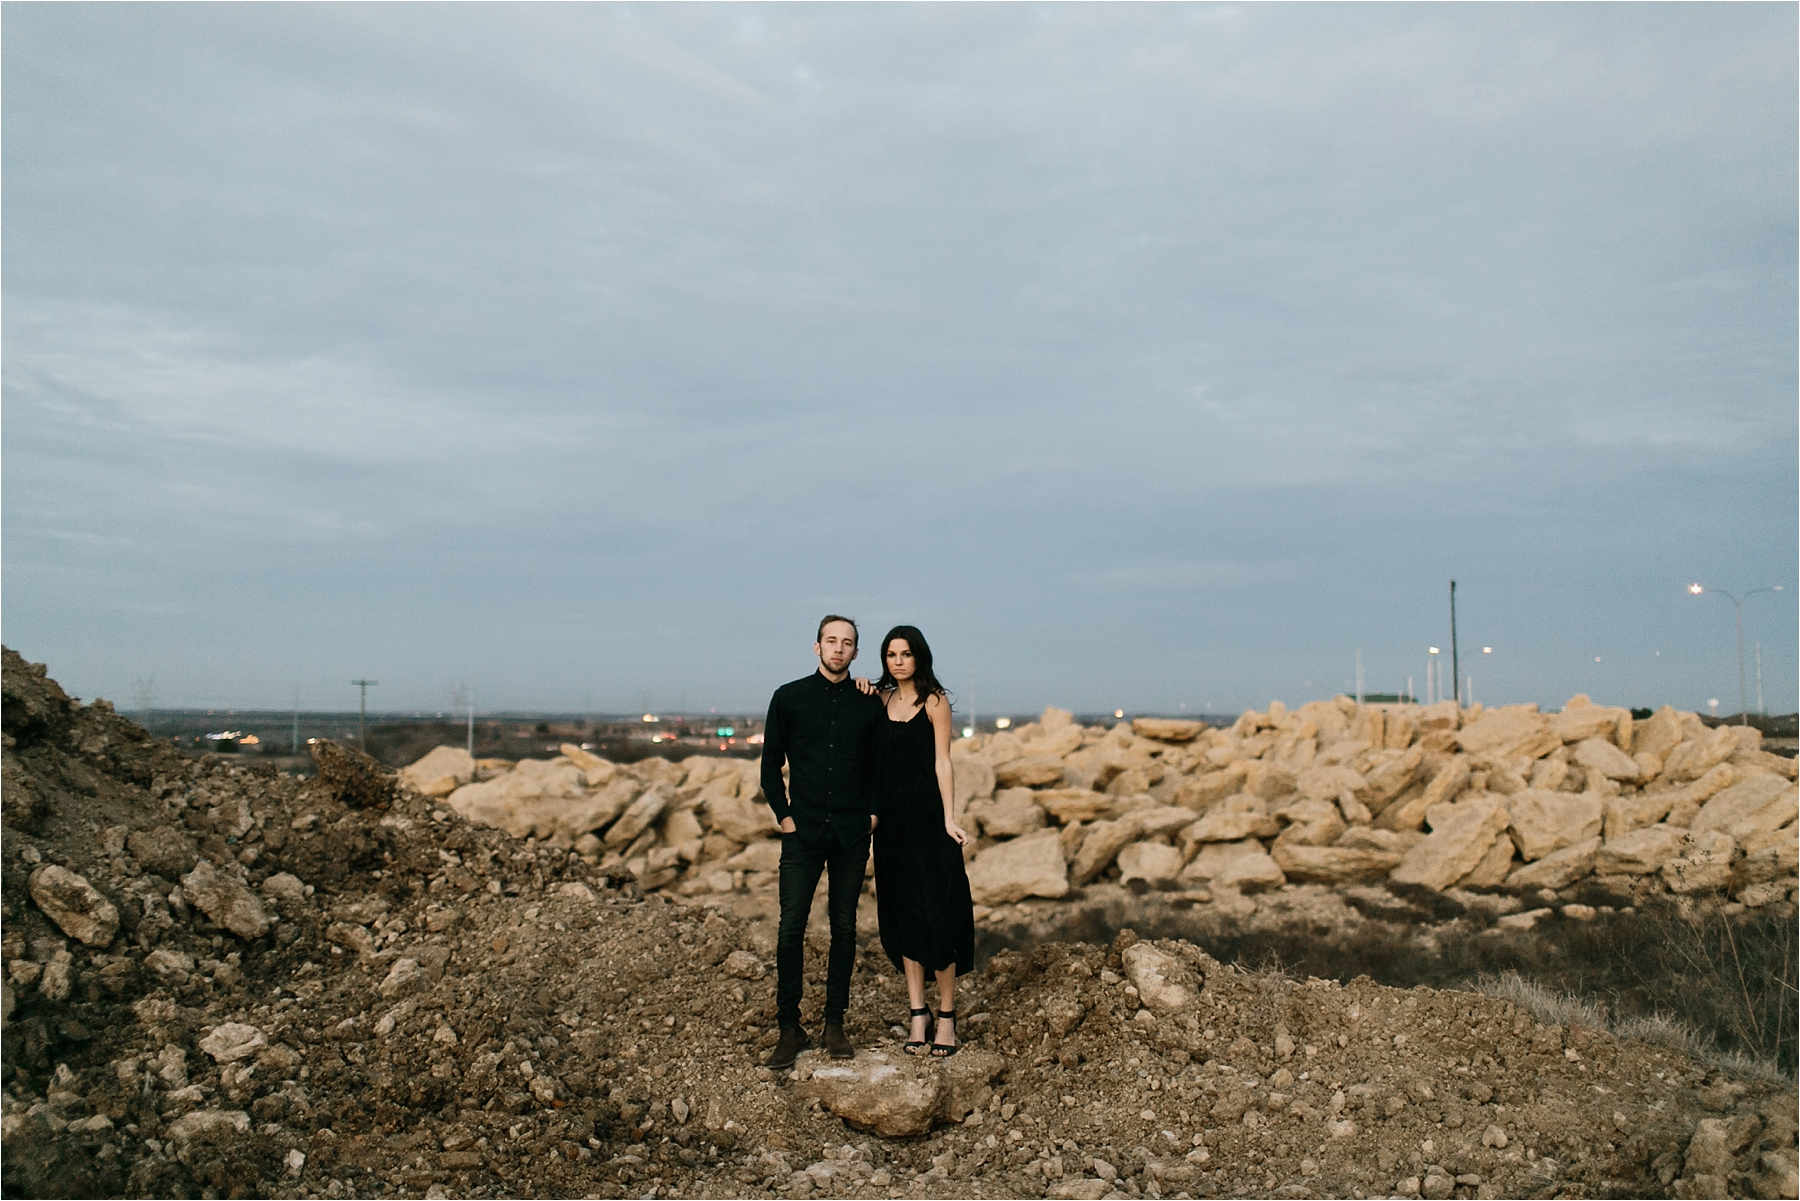 Trey + Phoebe __ a playful, intimate engagement session with dark_neutral outfit inspiration by North Texas Wedding Photographer Rachel Meagan Photography __ 69